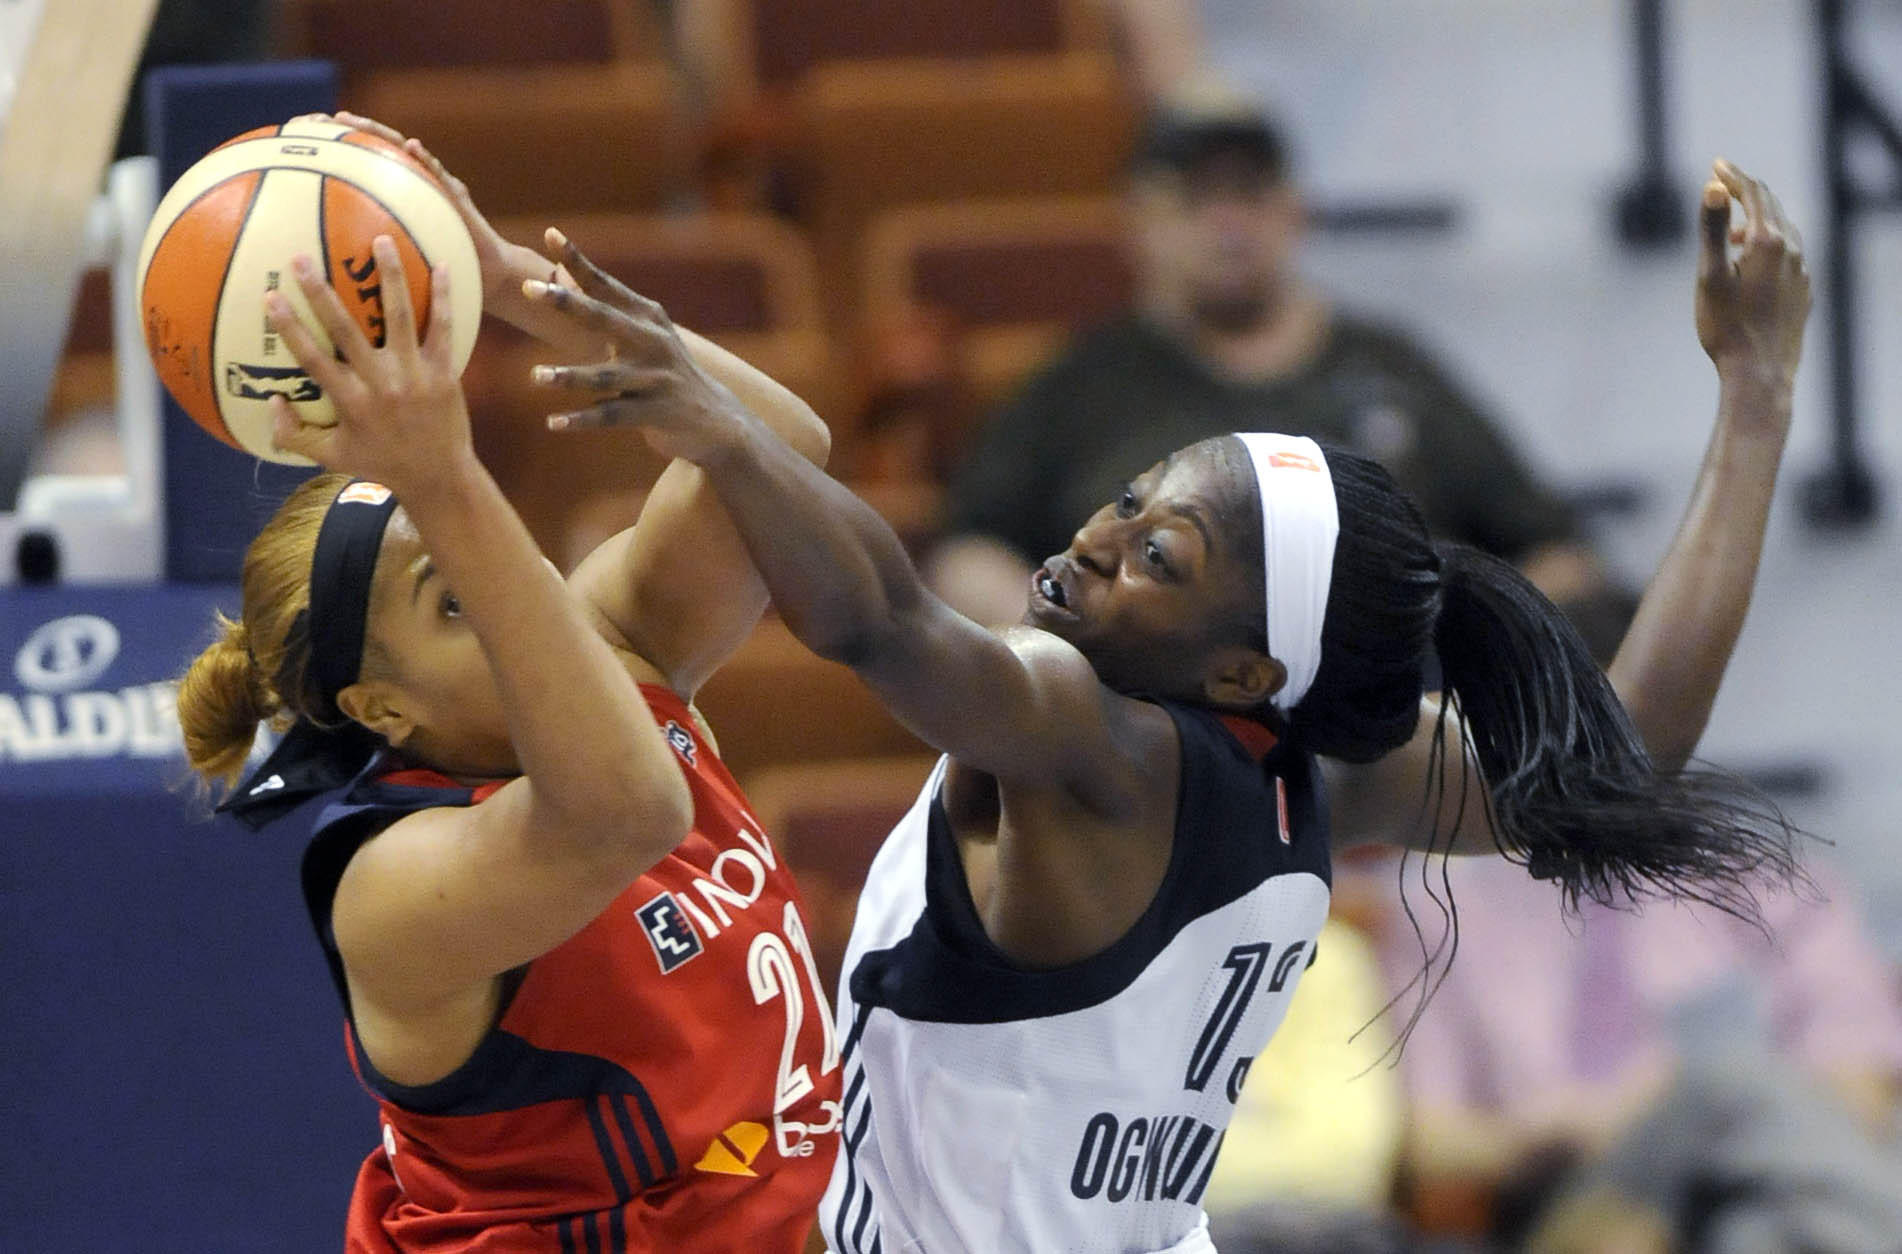 The Connecticut Sun's Chiney Ogwumike (13) fights for a rebound against the Washington Mystics' Tianna Hawkins (21) in the second half at the Mohegan Sun Arena. The Mystics won, 74-66.